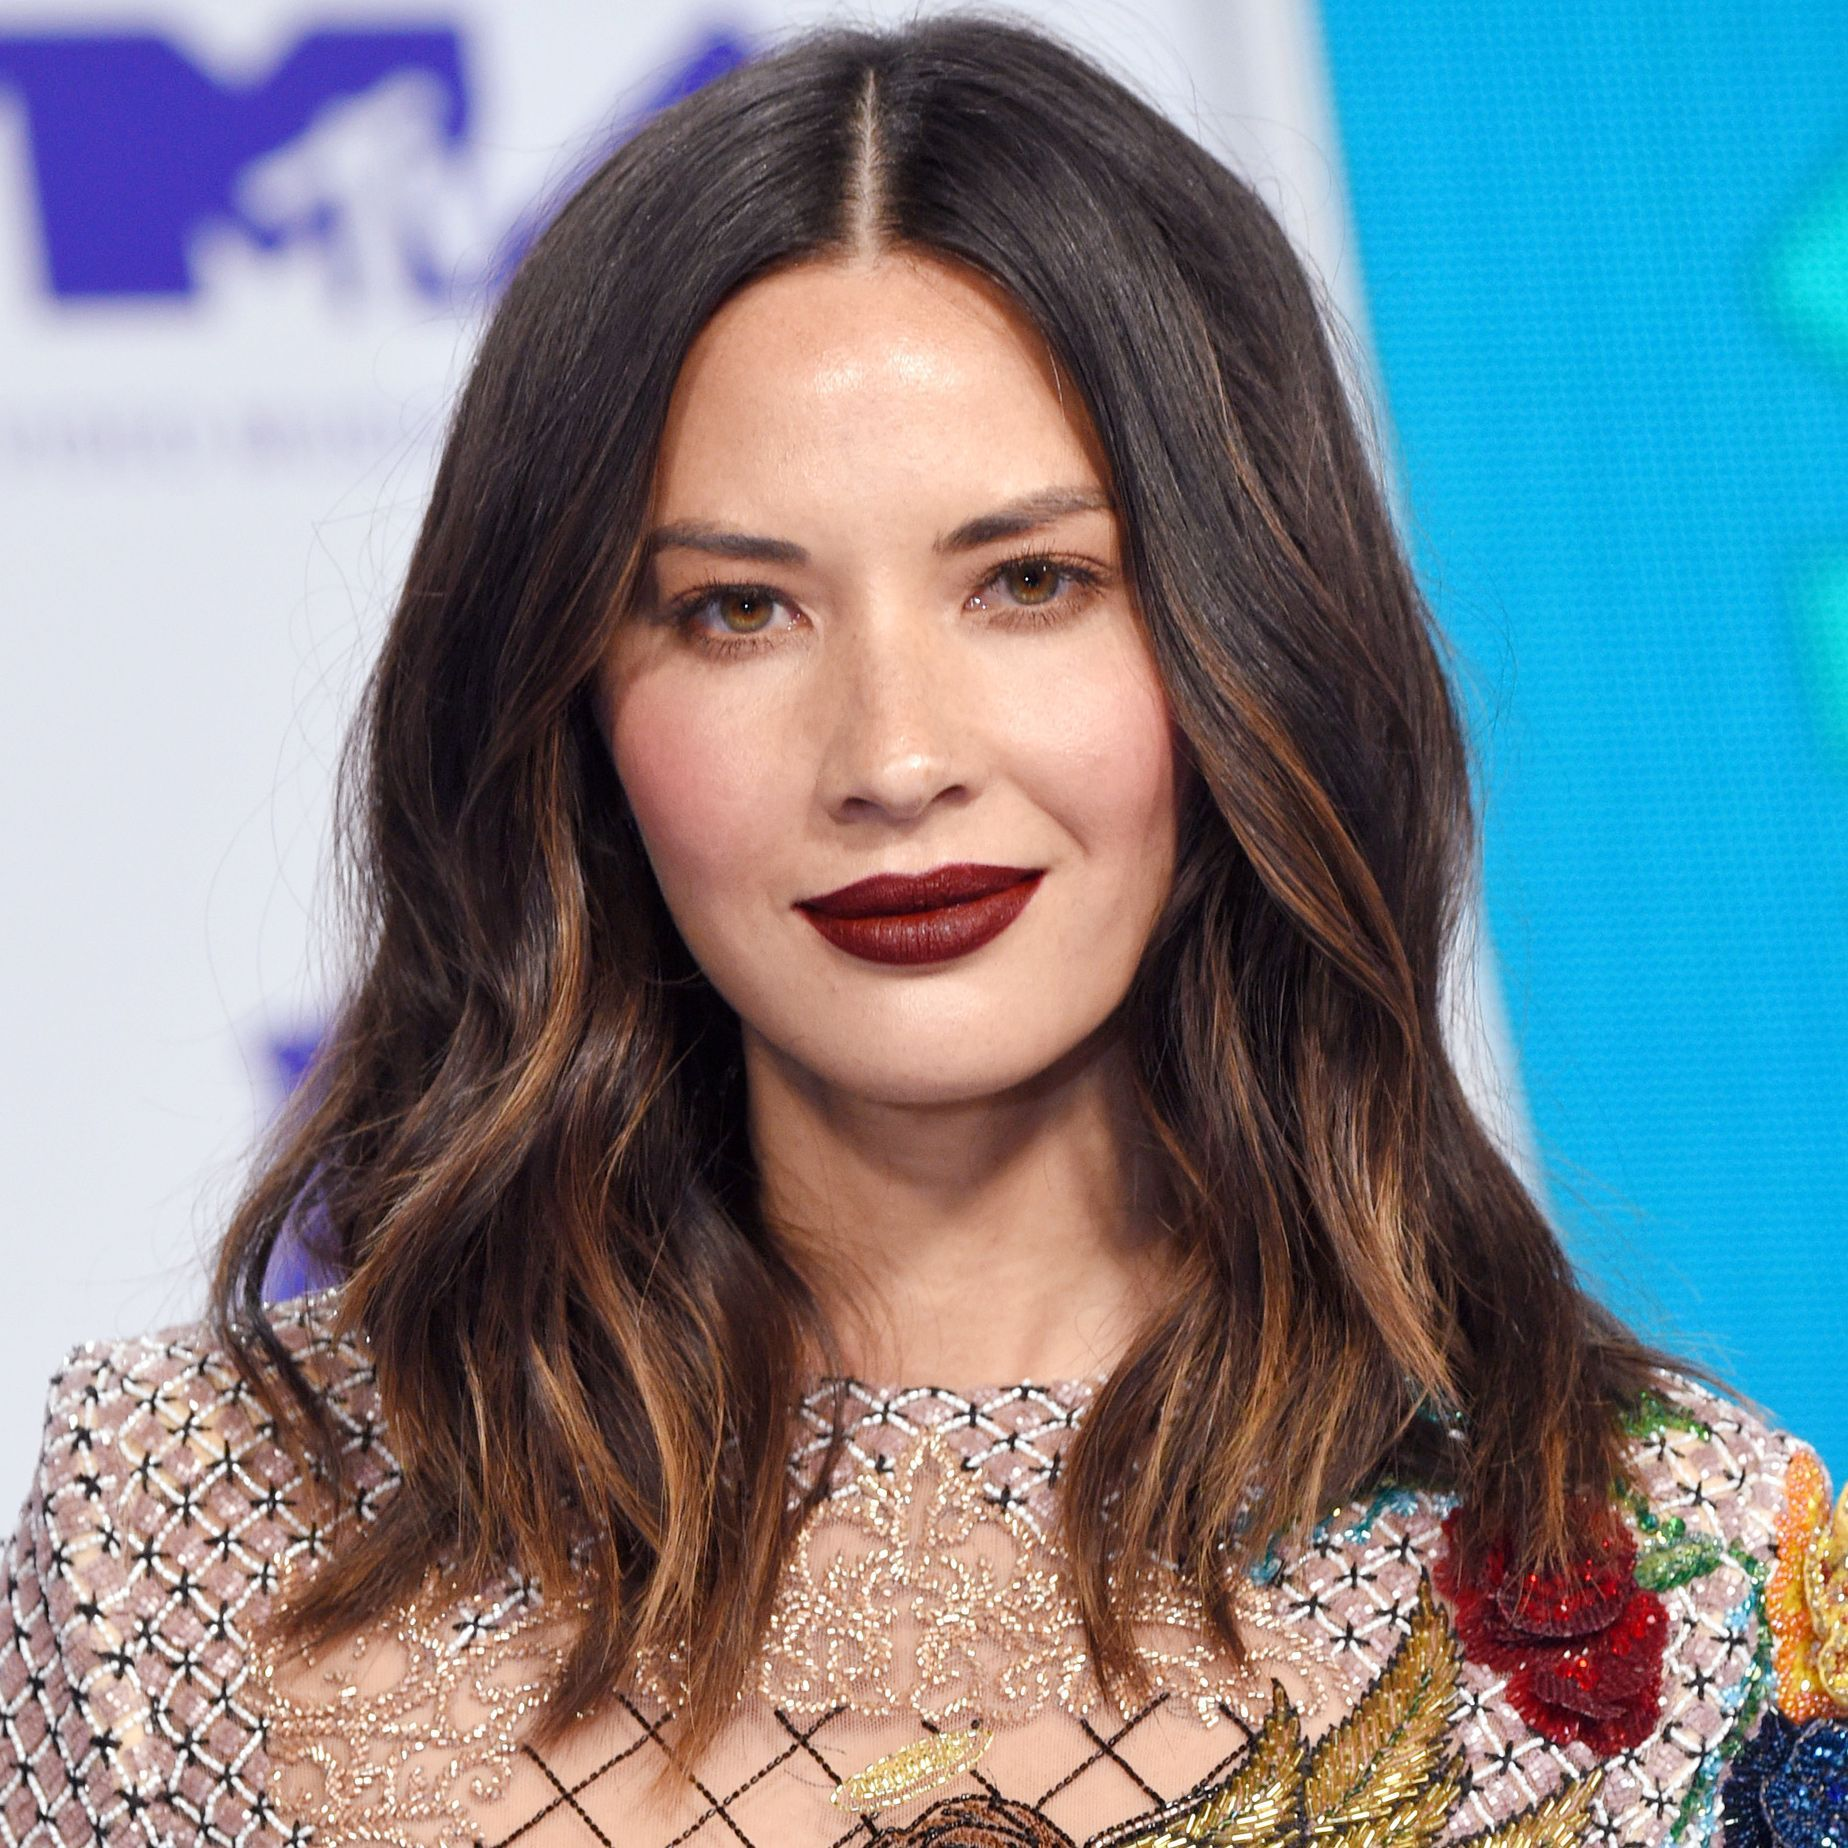 The 5 Hair Colors Youll See Everywhere This Fall Olivia Munns